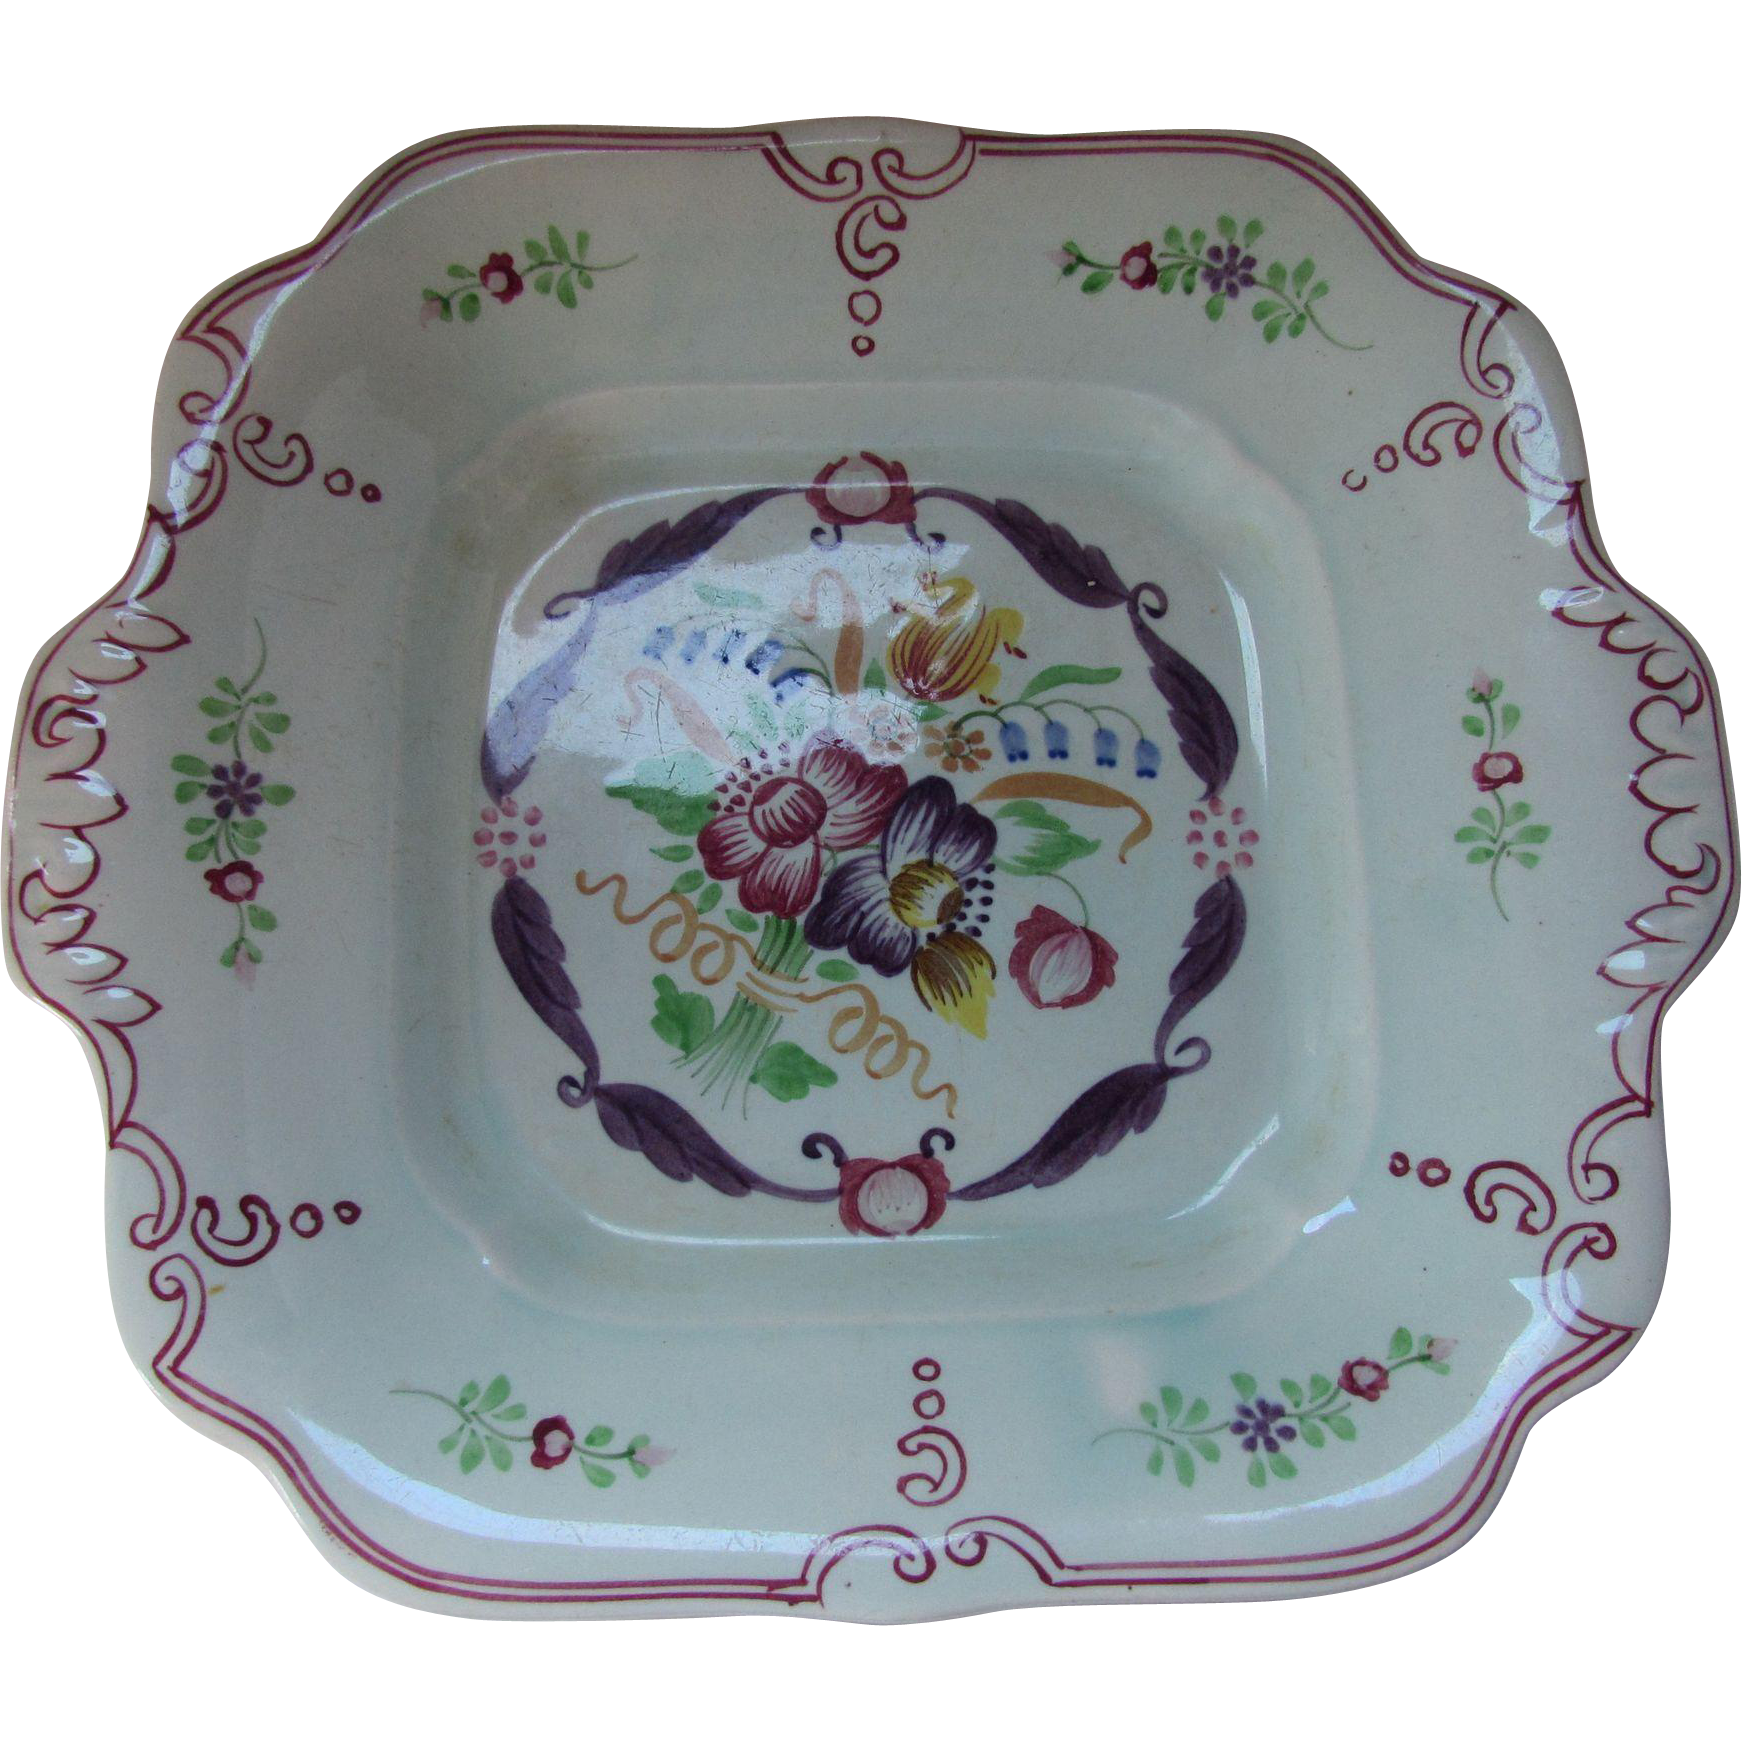 Calyx Ware Country Floral Adams Ware of England Serving Dish